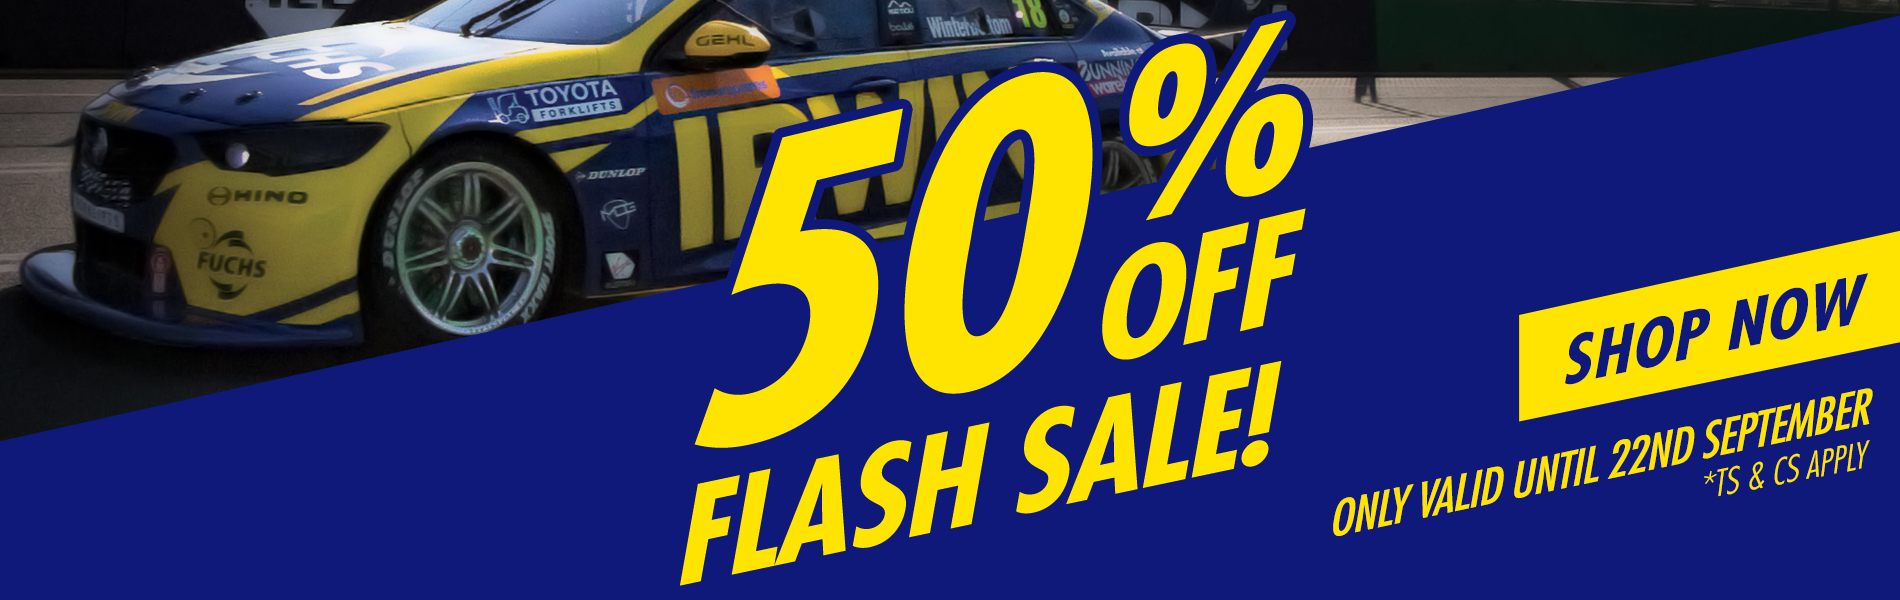 IRWIN-50-Off-flash-sale-polos-and-jackets